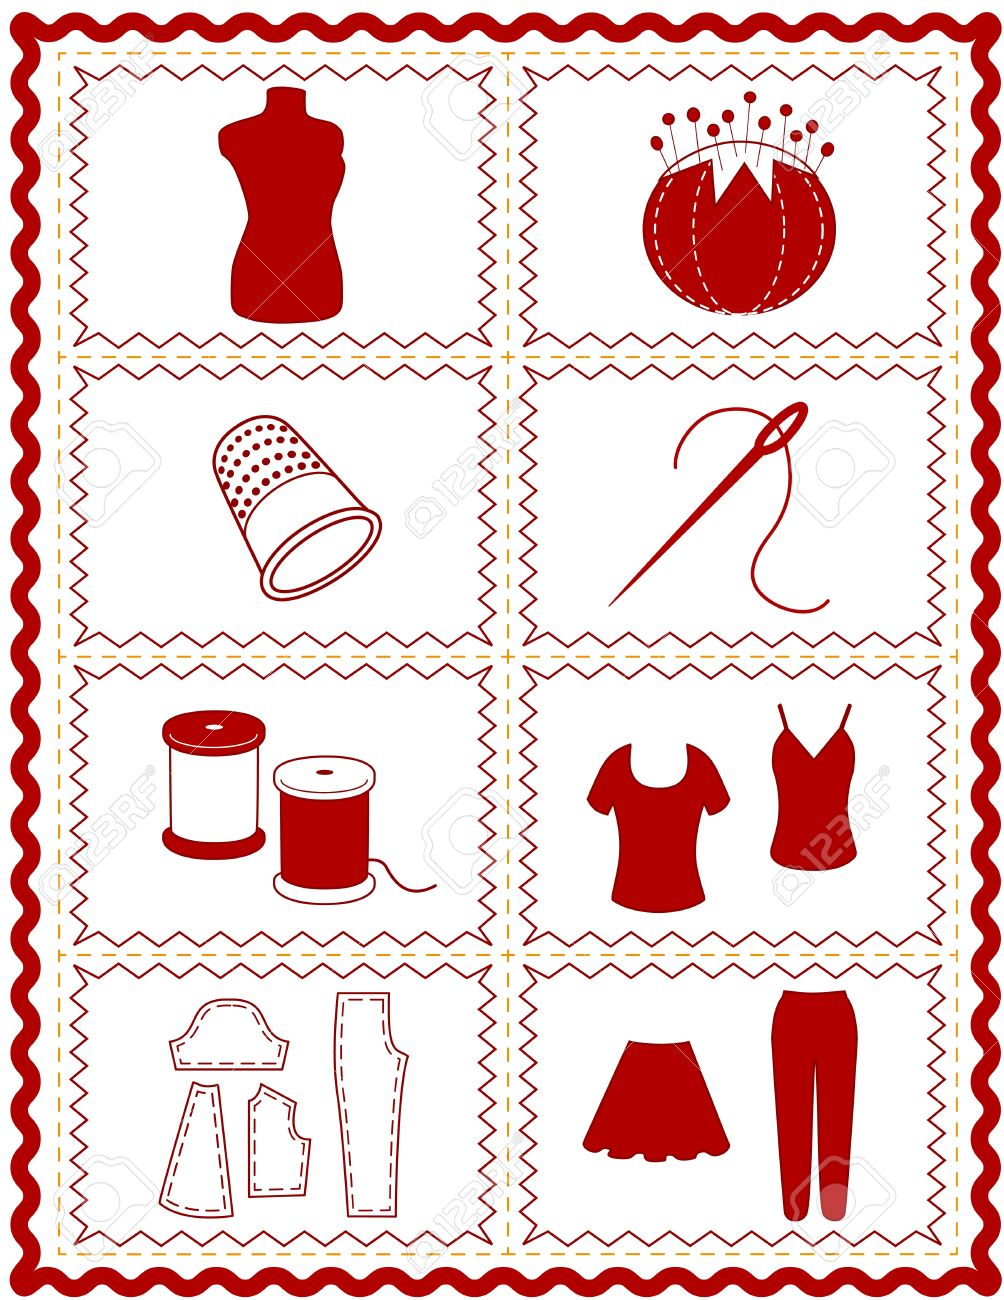 Sewing And Tailoring Icons, Tools And Supplies For Dressmaking.